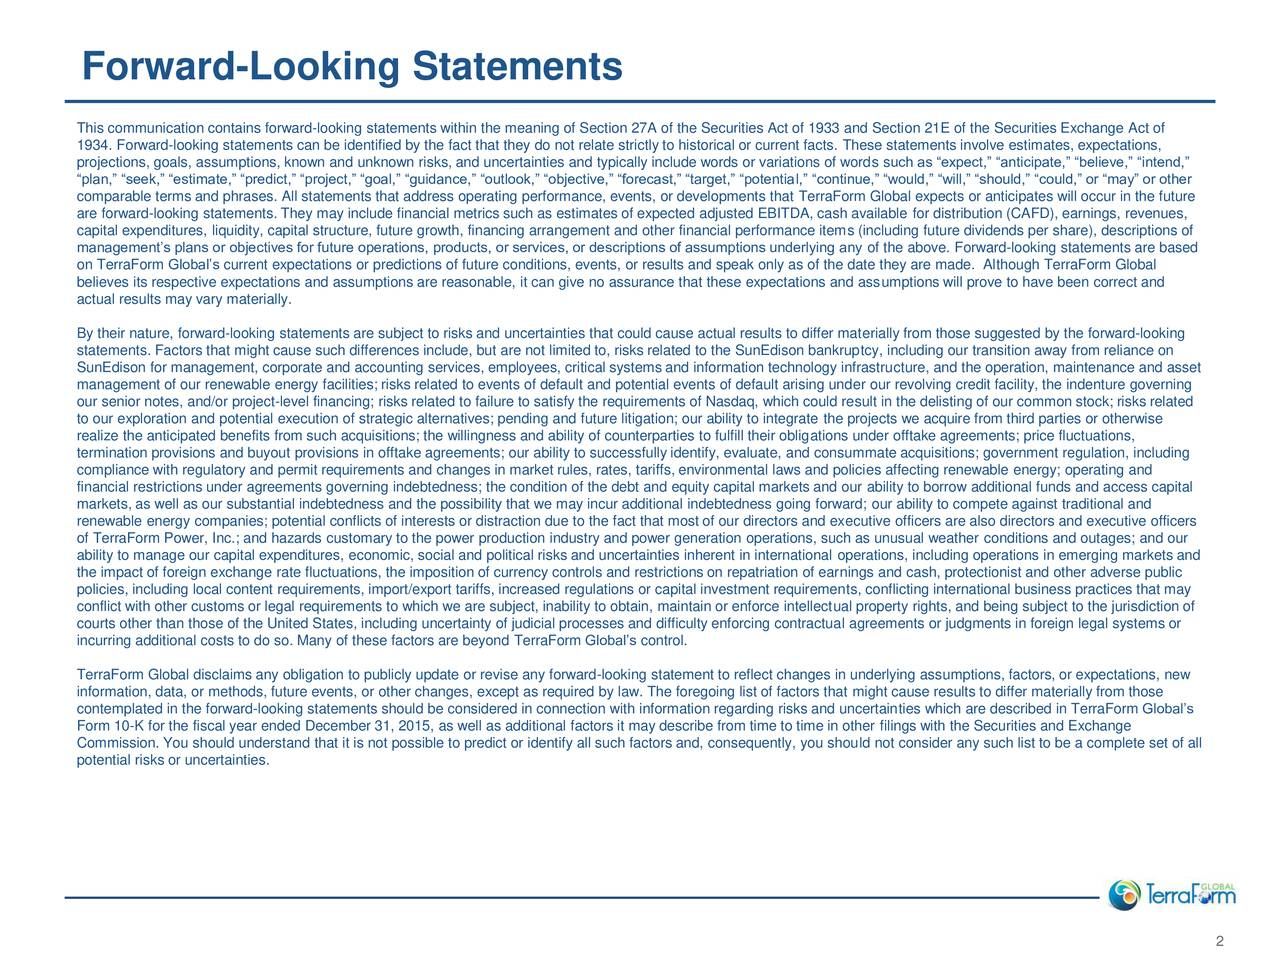 This communication contains forward-looking statements within the meaning of Section 27A of the Securities Act of 1933 and Section 21E of the Securities Exchange Act of 1934. Forward-looking statements can be identified by the fact that they do not relate strictly to historical or current facts. These statements involve estimates, expectations, projections, goals, assumptions, known and unknown risks, and uncertainties and typically include words or variations of words such as expect, anticipate, believe, intend, plan, seek, estimate, predict, project, goal, guidance, outlook, objective, forecast, target, potential, continue, would, will, should, could, or may or other comparable terms and phrases. All statements that address operating performance, events, or developments that TerraForm Global expects or anticipates will occur in the future are forward-looking statements. They may include financial metrics such as estimates of expected adjusted EBITDA, cash available for distribution (CAFD), earnings, revenues, capital expenditures, liquidity, capital structure, future growth, financing arrangement and other financial performance items (including future dividends per share), descriptions of managements plans or objectives for future operations, products, or services, or descriptions of assumptions underlying any of the above. Forward-looking statements are based on TerraForm Globals current expectations or predictions of future conditions, events, or results and speak only as of the date they are made. Although TerraForm Global believes its respective expectations and assumptions are reasonable, it can give no assurance that these expectations and assumptions will prove to have been correct and actual results may vary materially. By their nature, forward-looking statements are subject to risks and uncertainties that could cause actual results to differ materially from those suggested by the forward-looking statements. Factors that might cause such differences includ